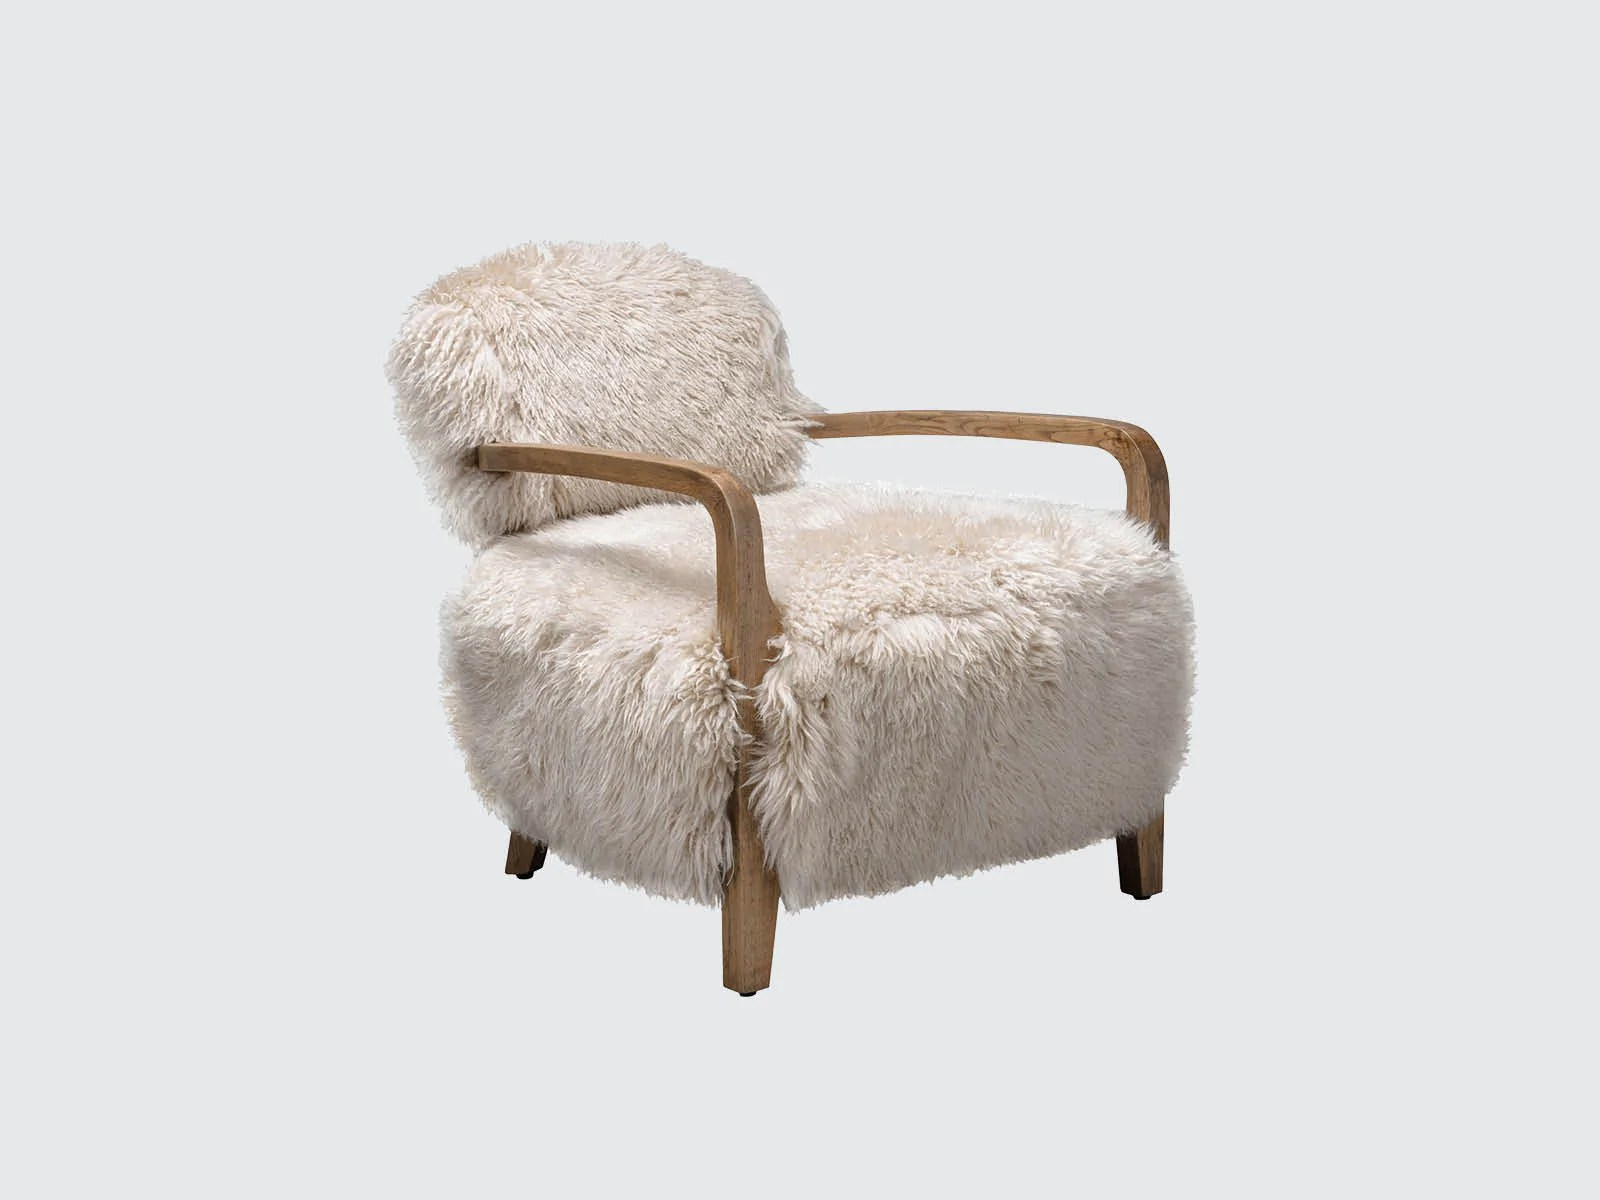 yeti chair accessories covers to rent cabana by timothy oulton   dawson and co auckland – &